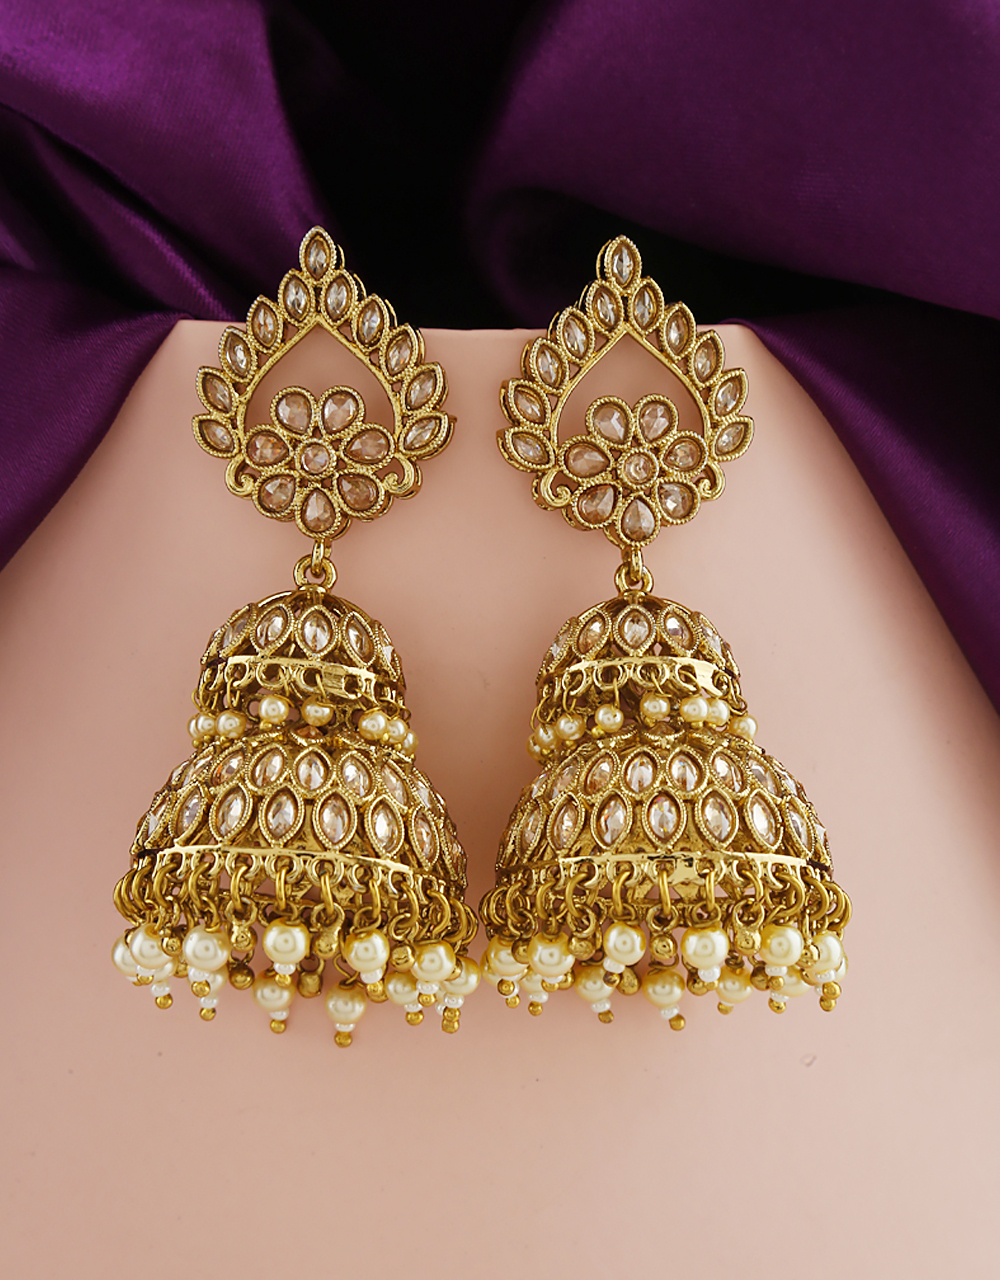 Unique Collection Of Golden Colour Traditional Earrings By Anuradha Arts